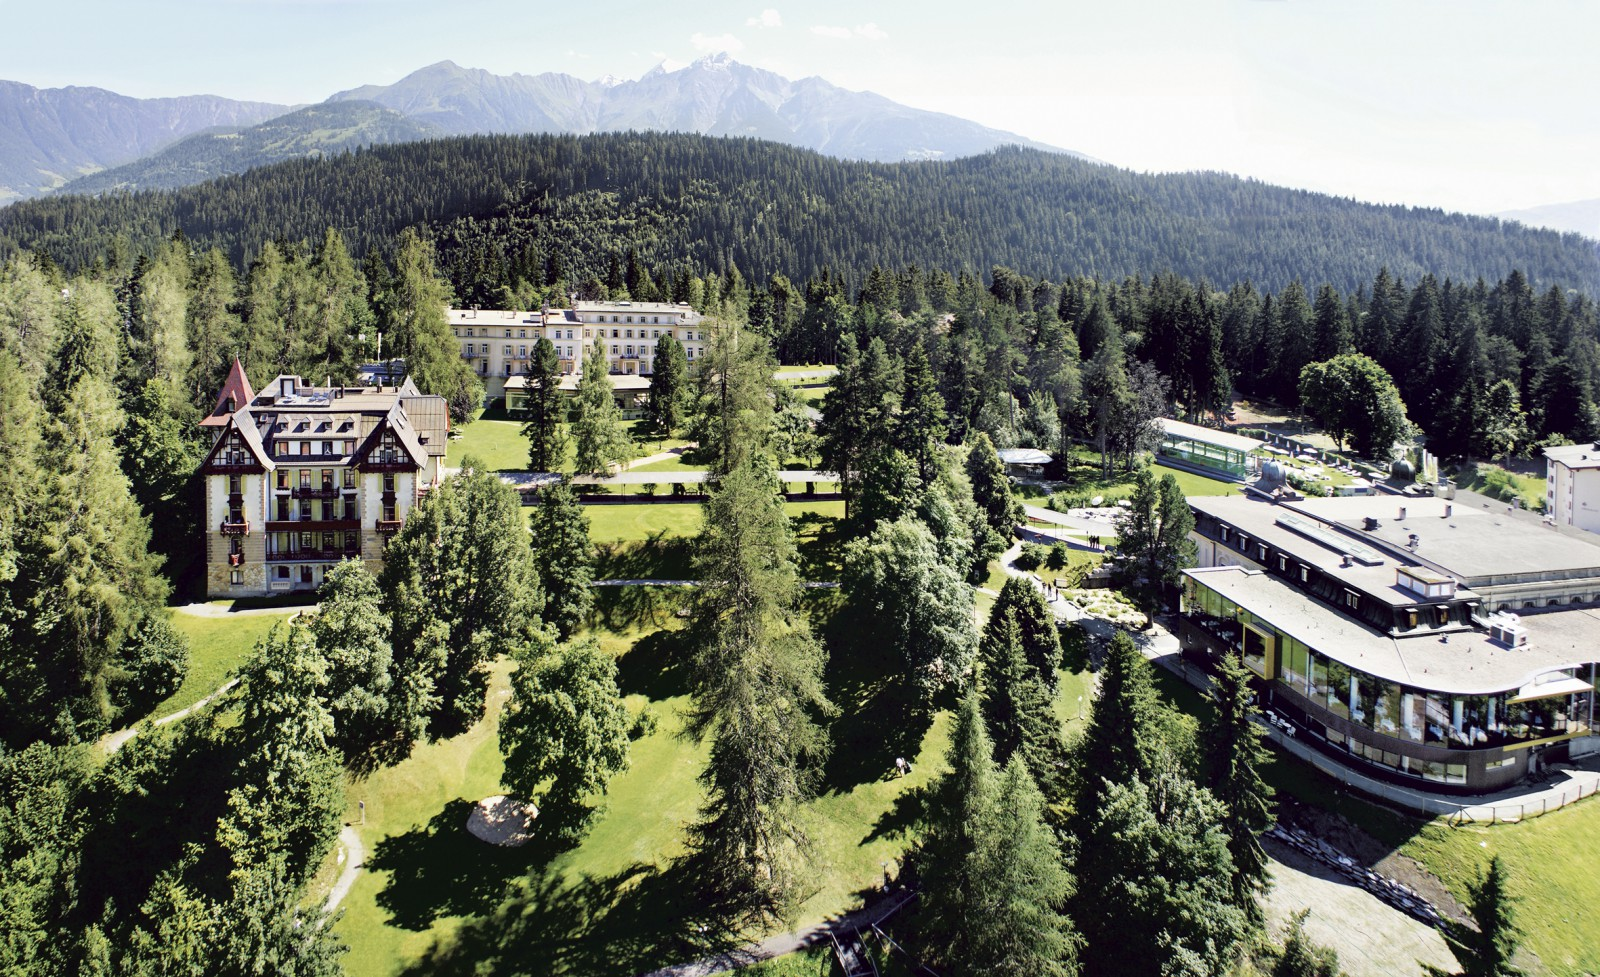 Fotos: Waldhaus Flims Mountain Resort & Spa